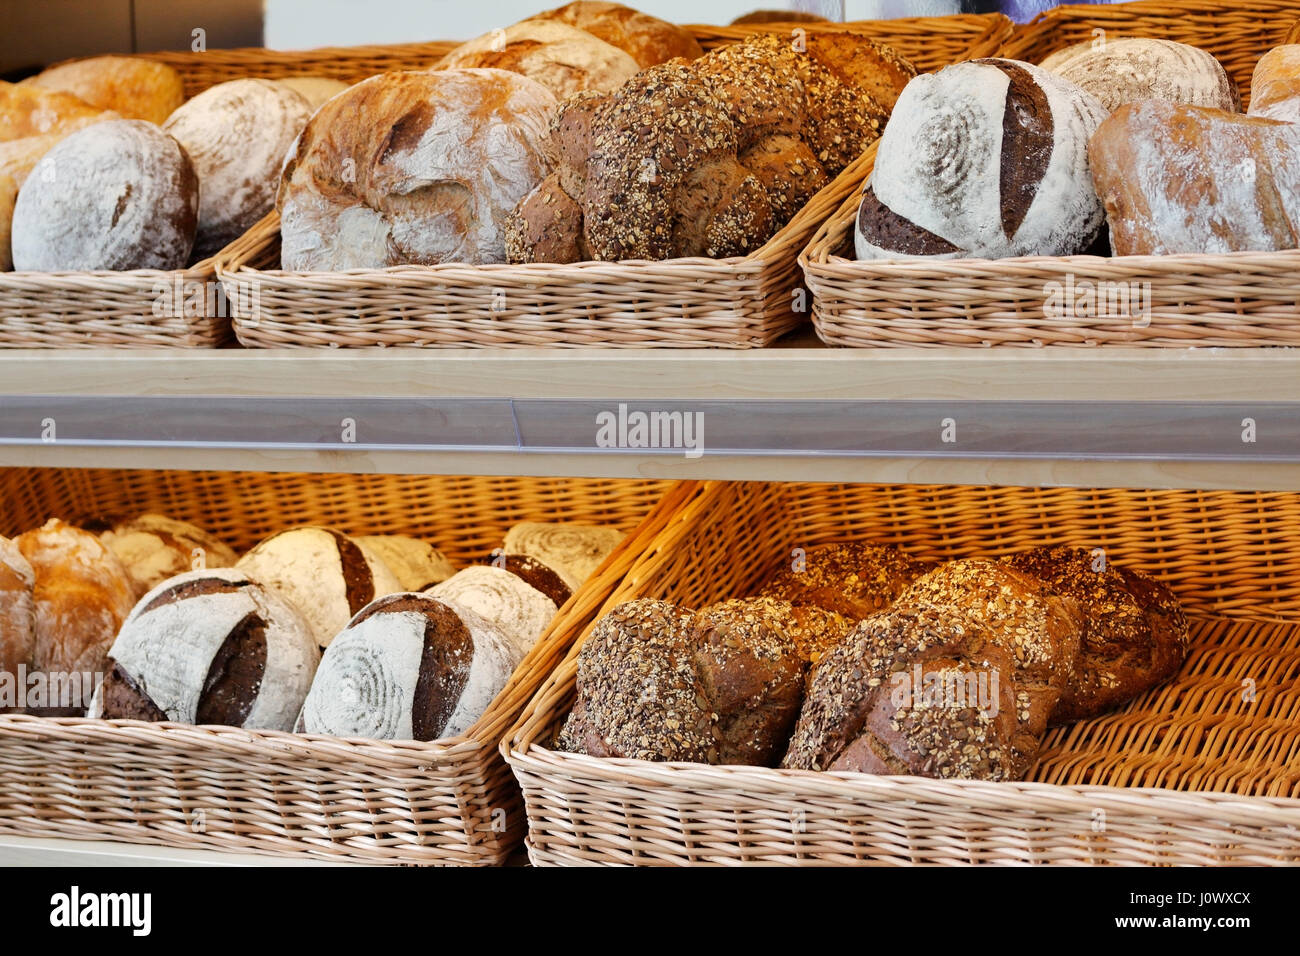 Artisan Bread On The Shelves In Bakeshop